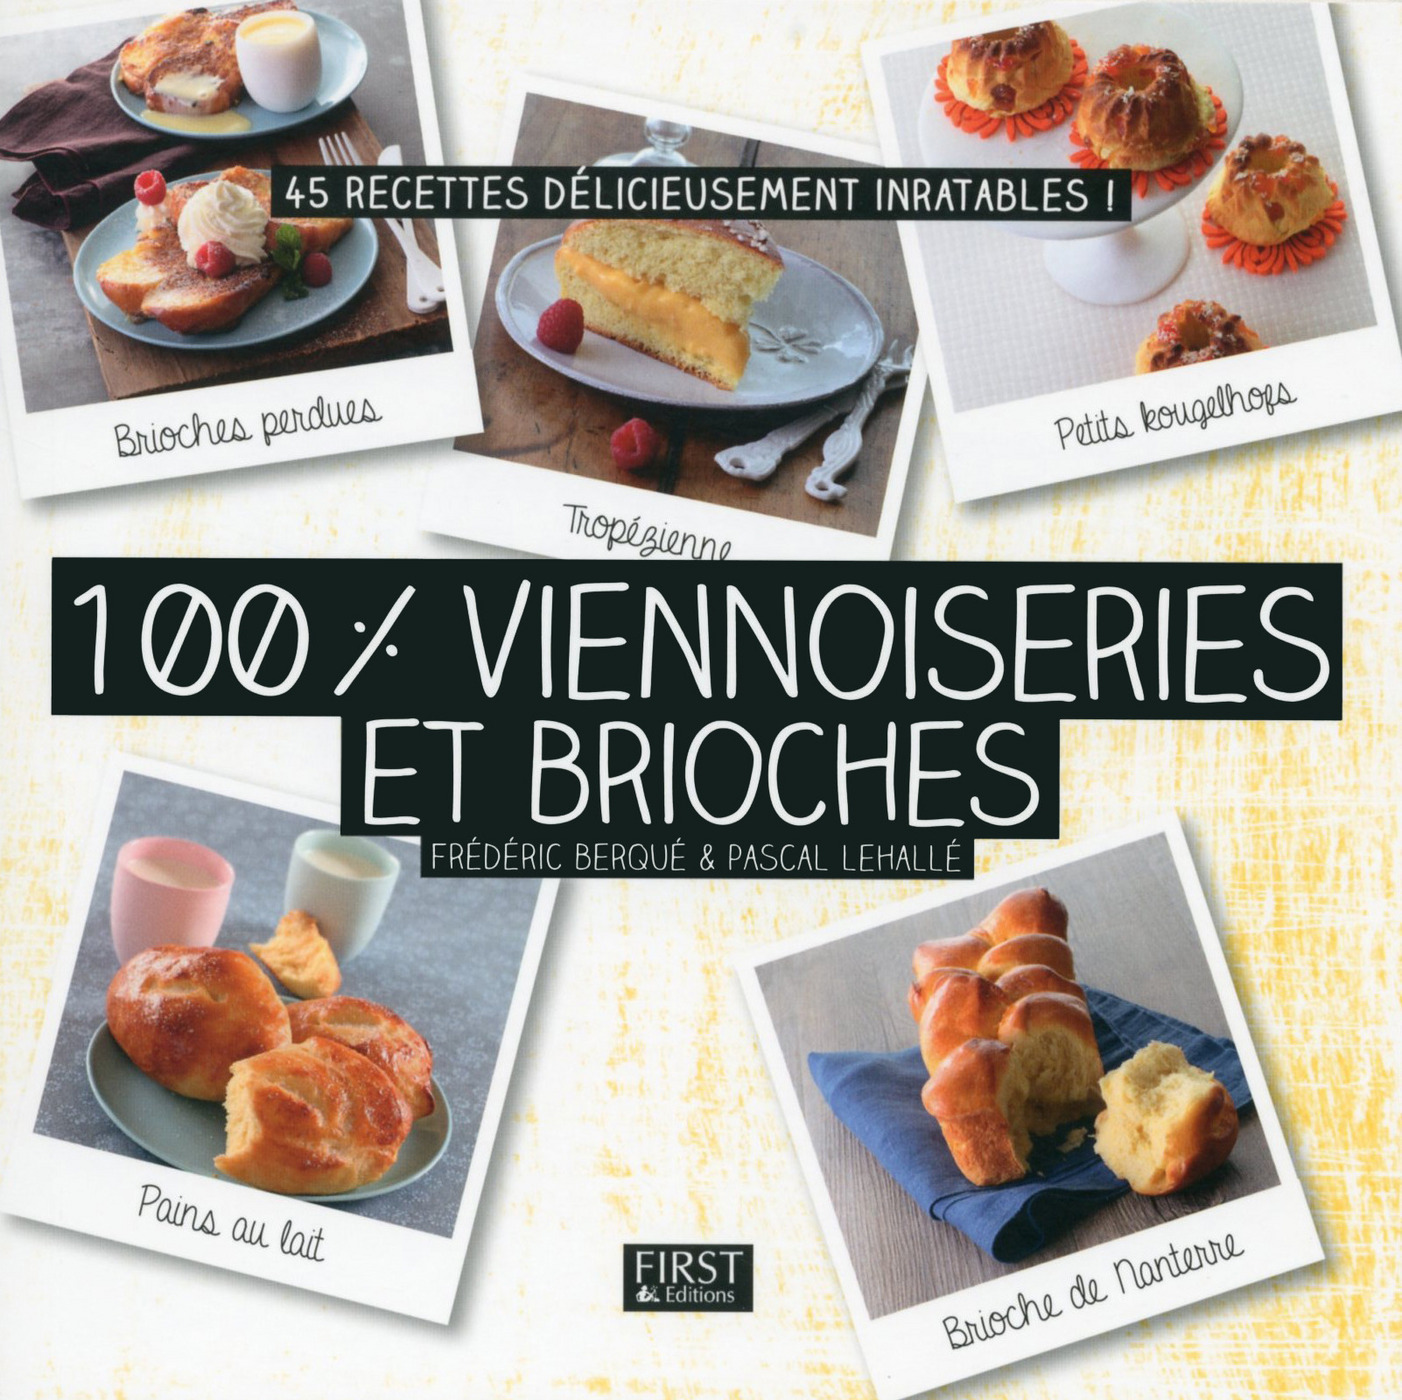 100 % viennoiseries et brioches (ebook)